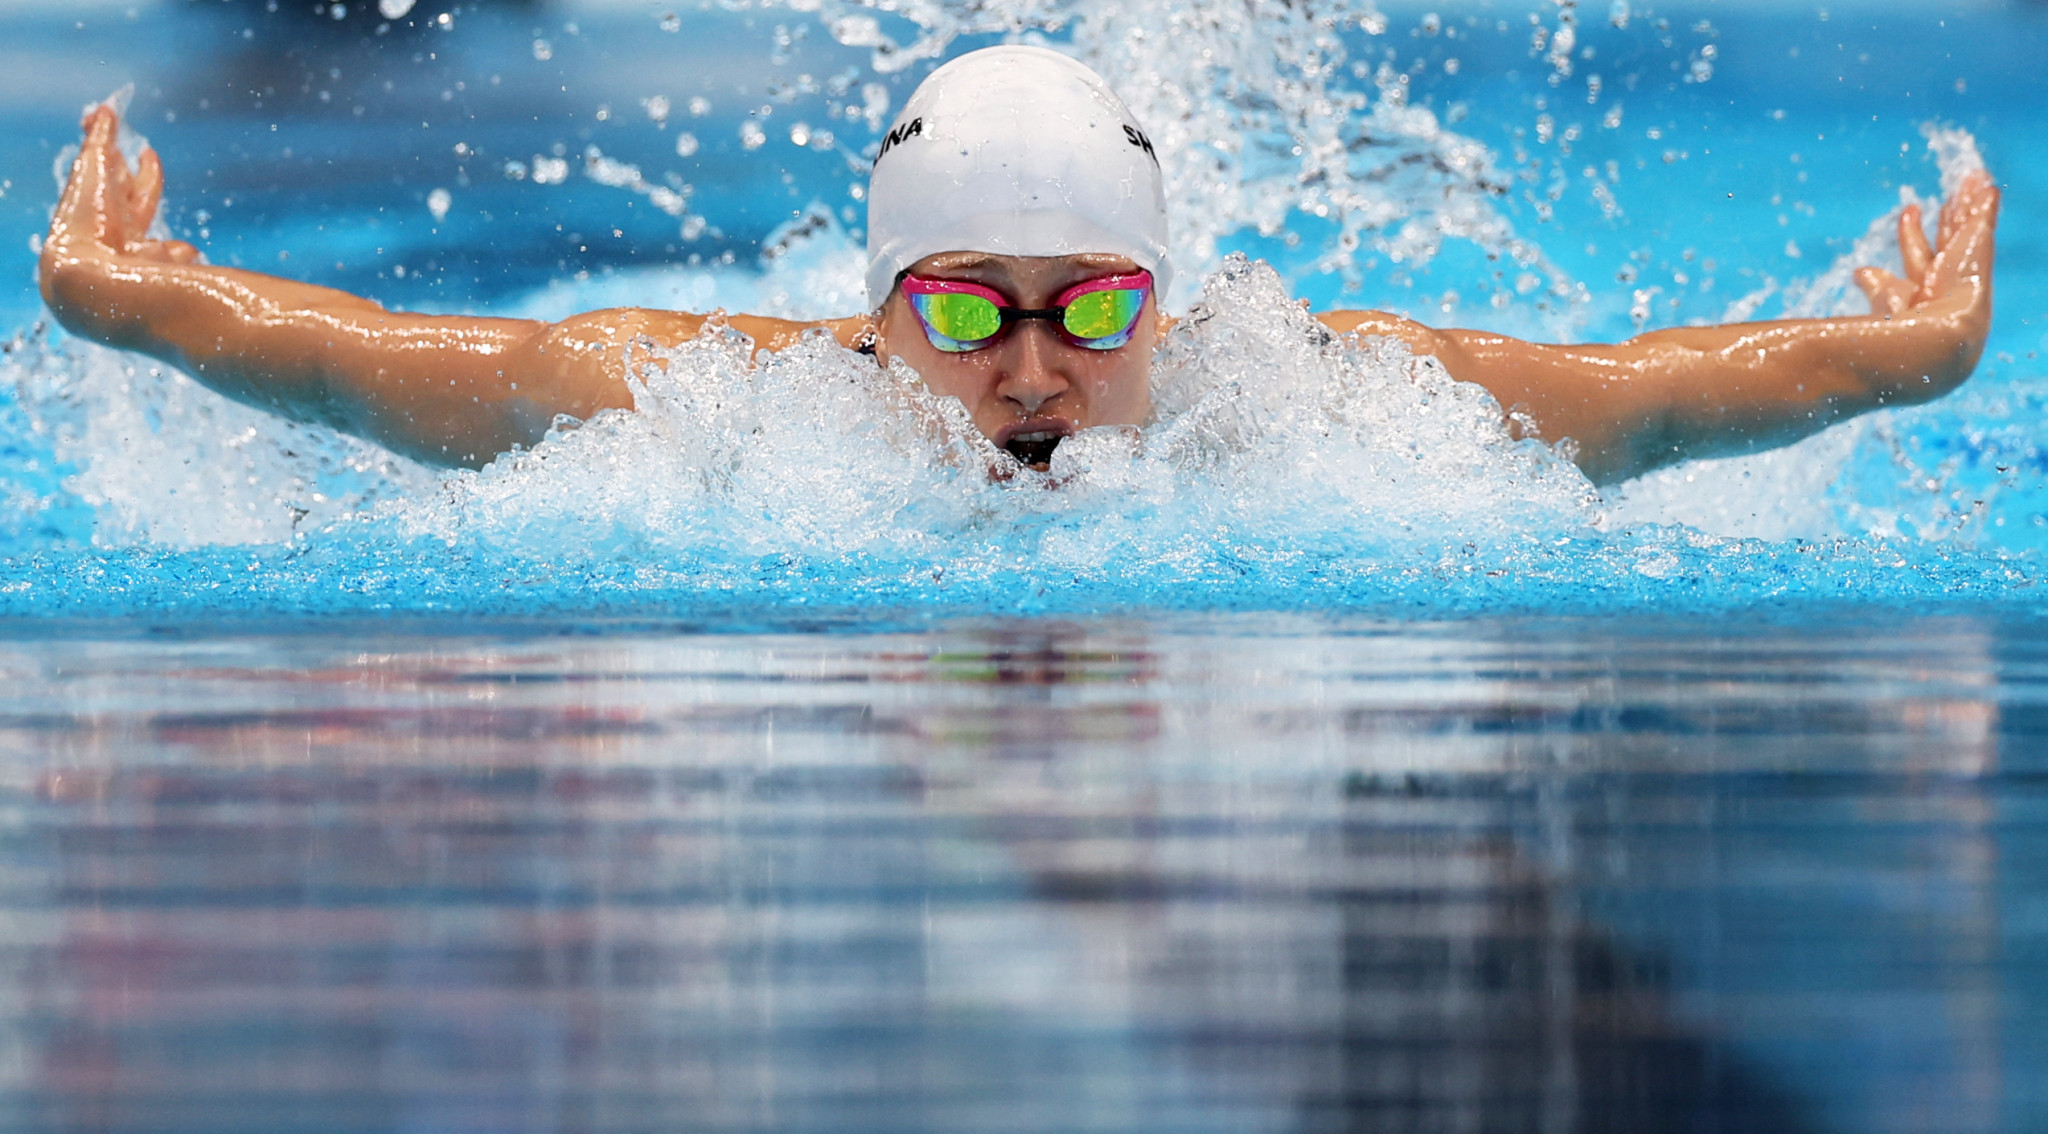 Valeriia Shabalina was the most successful RPC athlete at Tokyo 2020 with three gold medal and one silver ©Getty Images